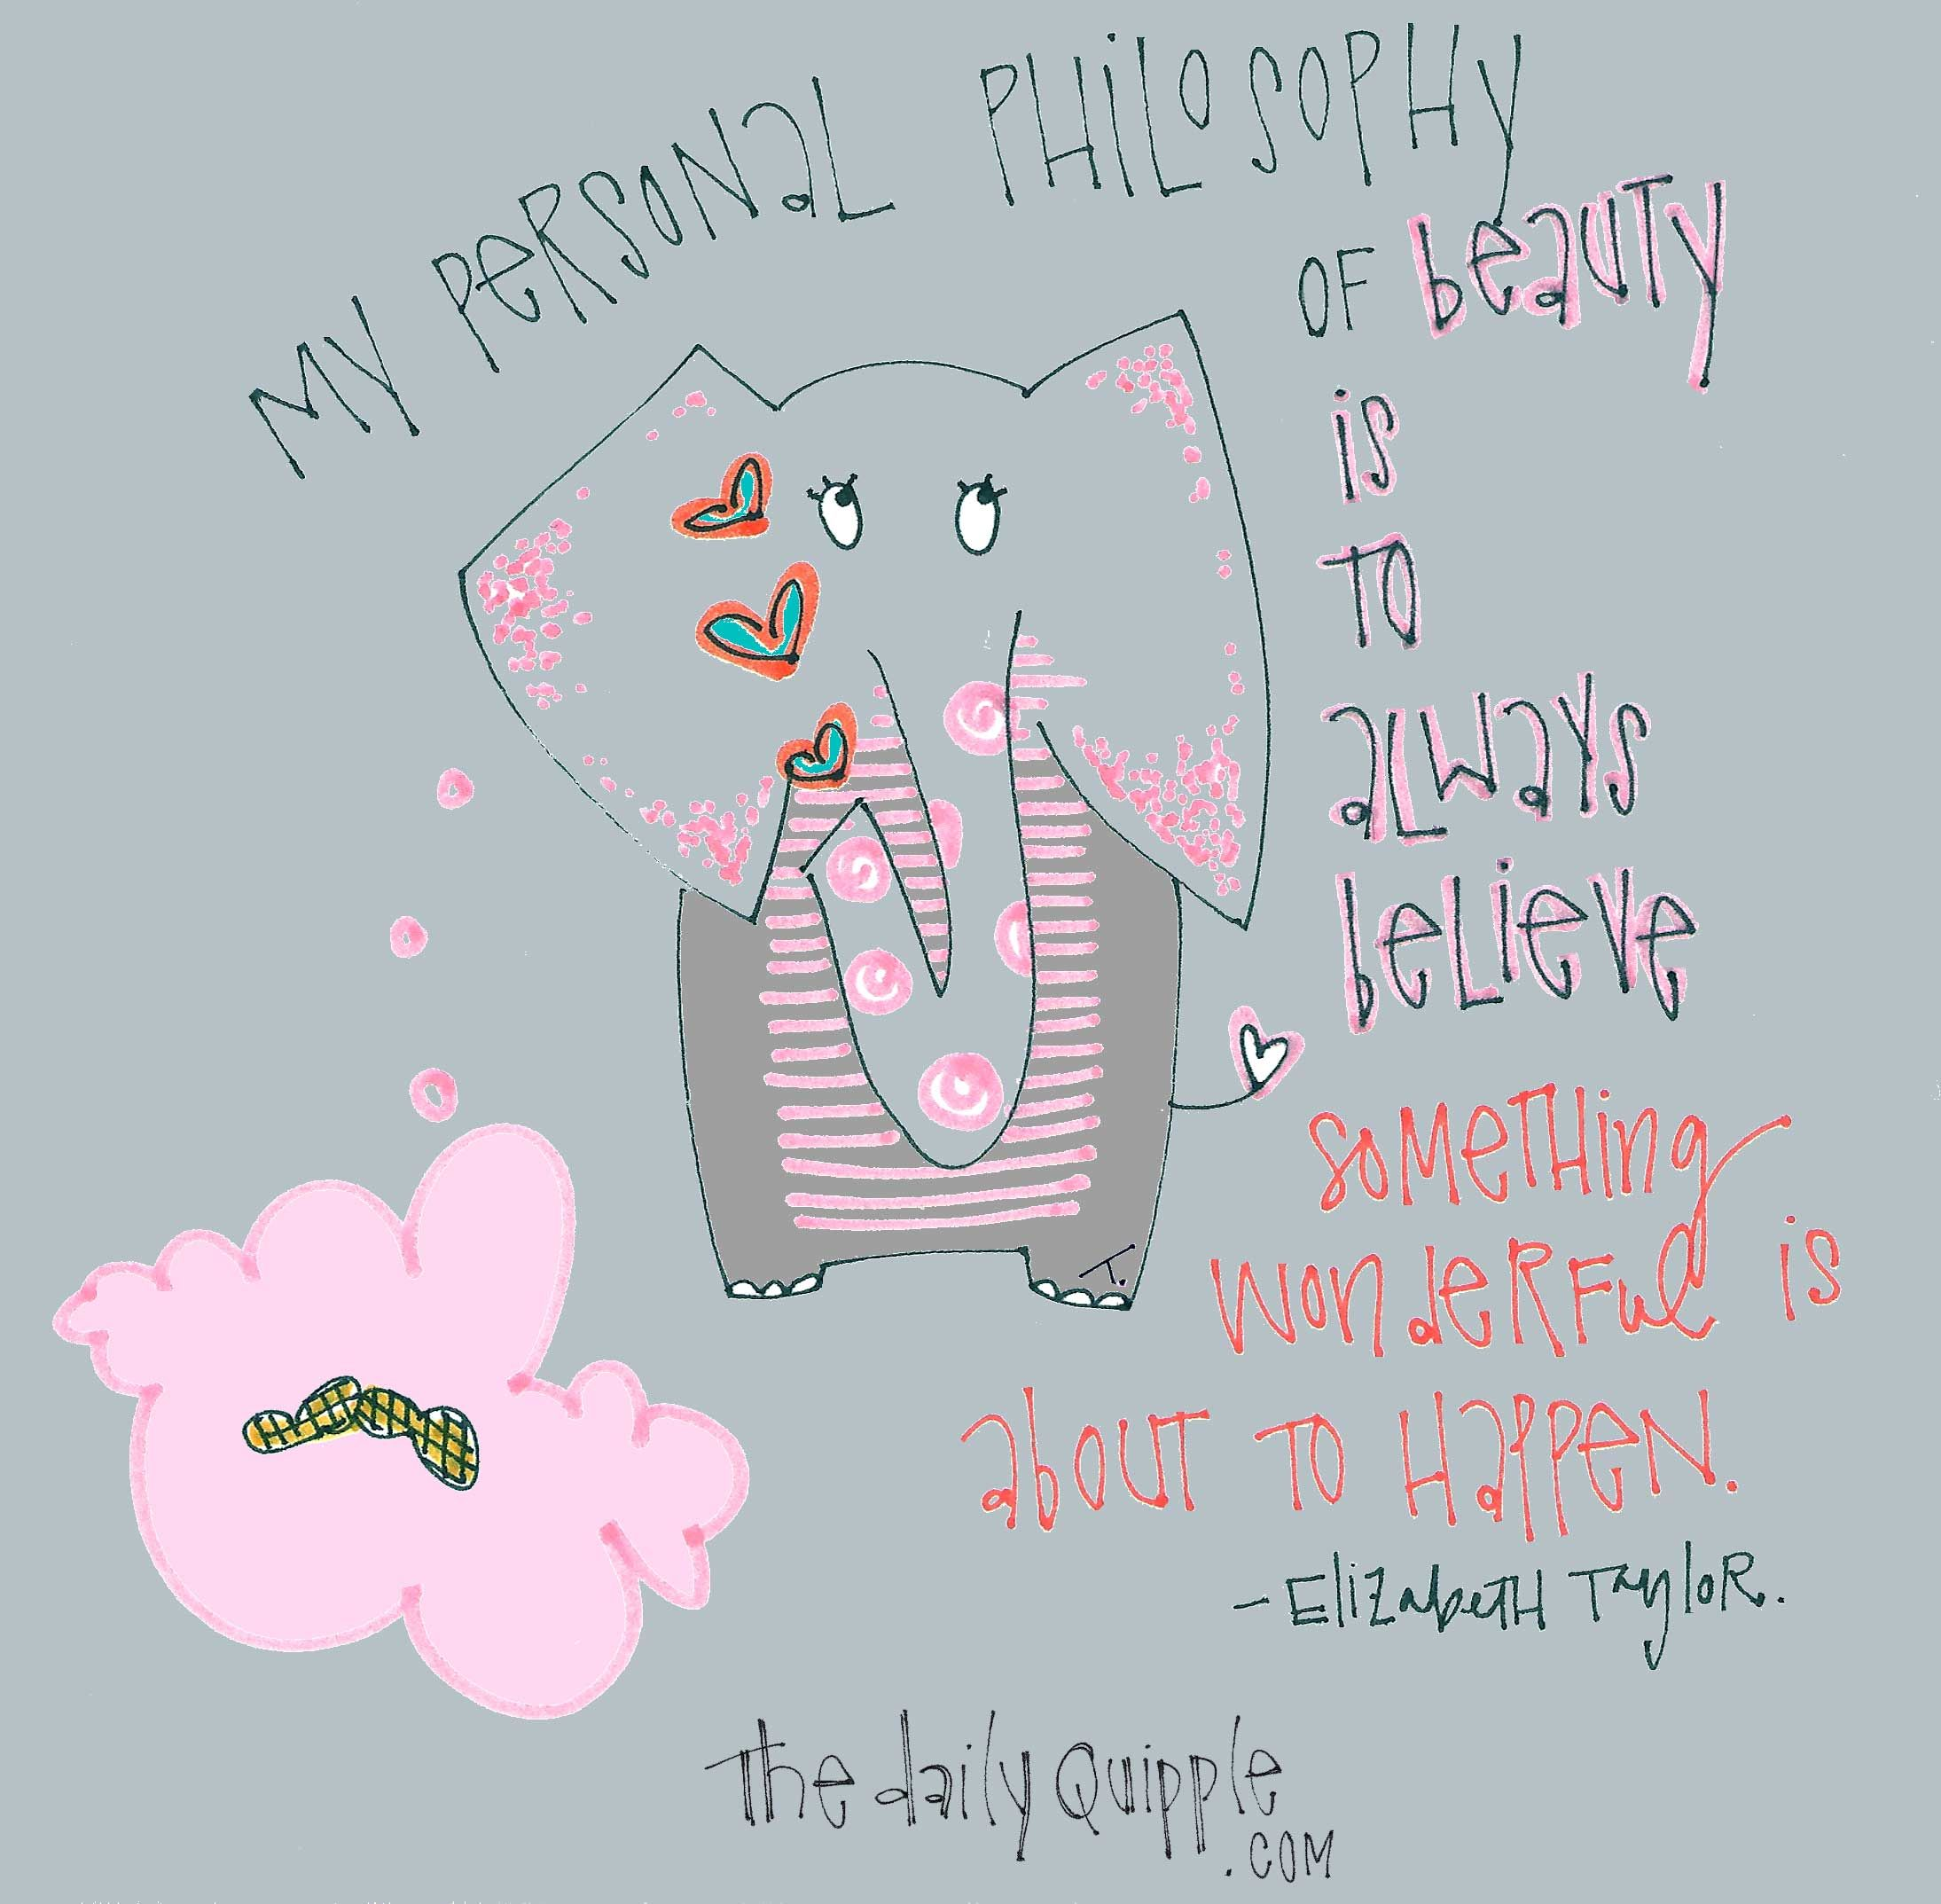 Optimism | My personal philosophy of beauty is to always believe that something wonderful is about to happen.